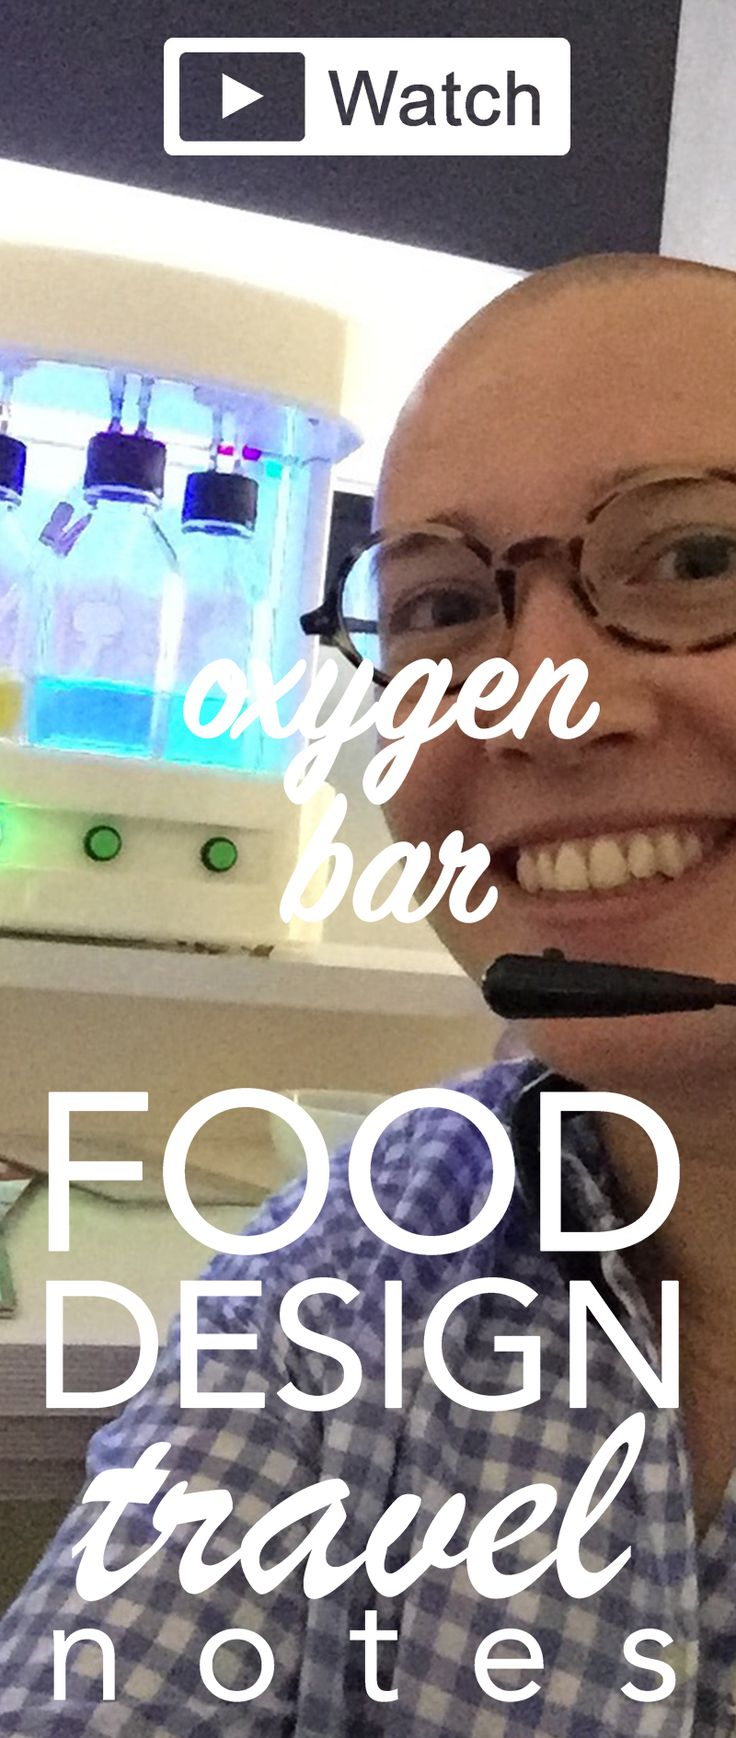 Oxygen Bar in Tokyo! Yes please! I'll try that! =) Food Design Travel Note. Watch here: http://francesca-zampollo.com/oxygen-bar-in-tokyo-food-design-or-not/